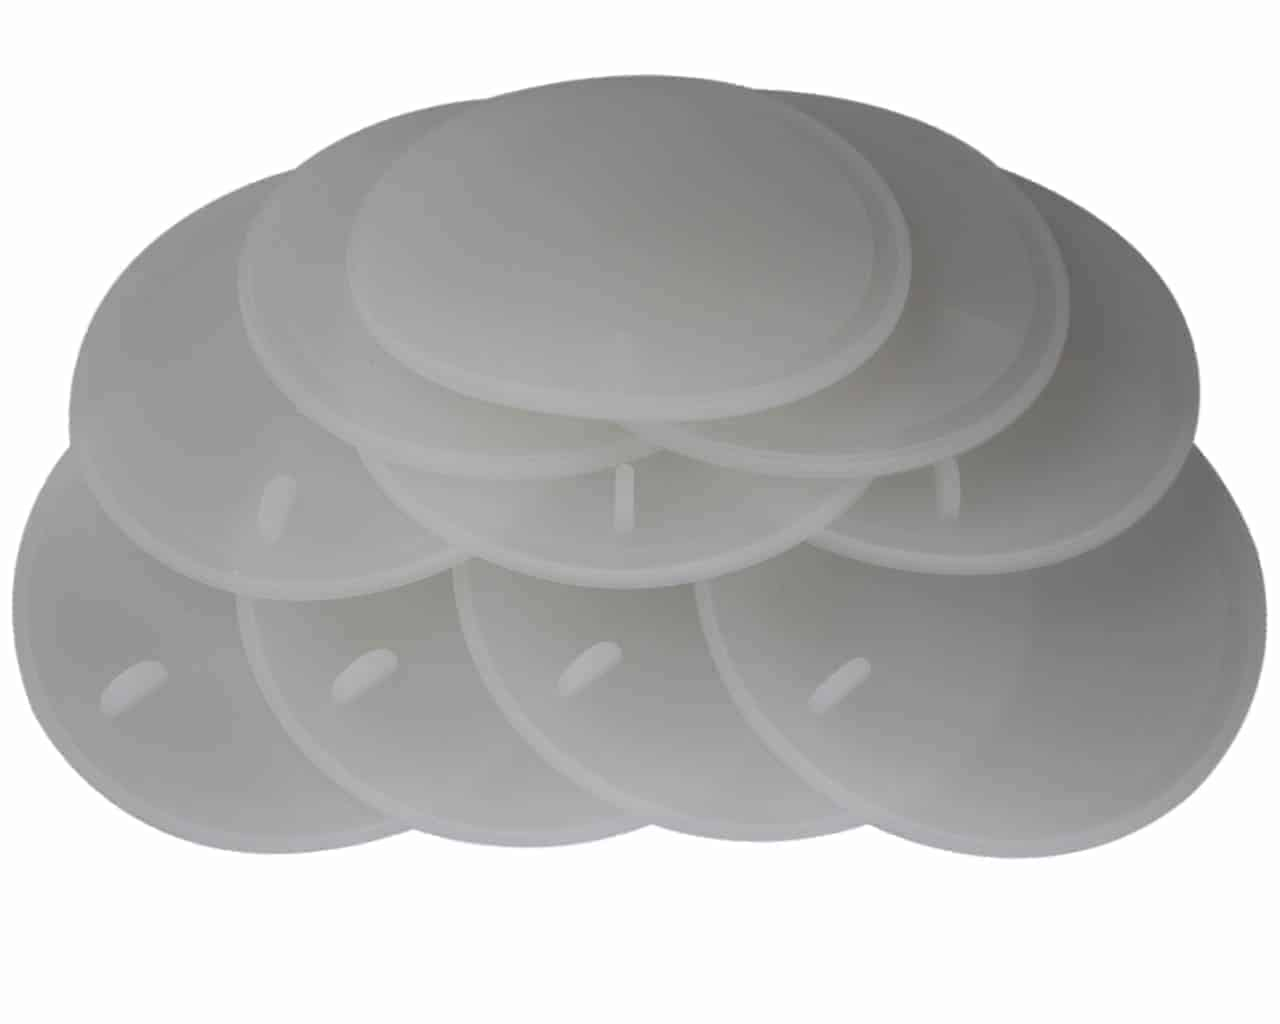 Platinum silicone sealing lid liners with tab for easy removal 10 pack